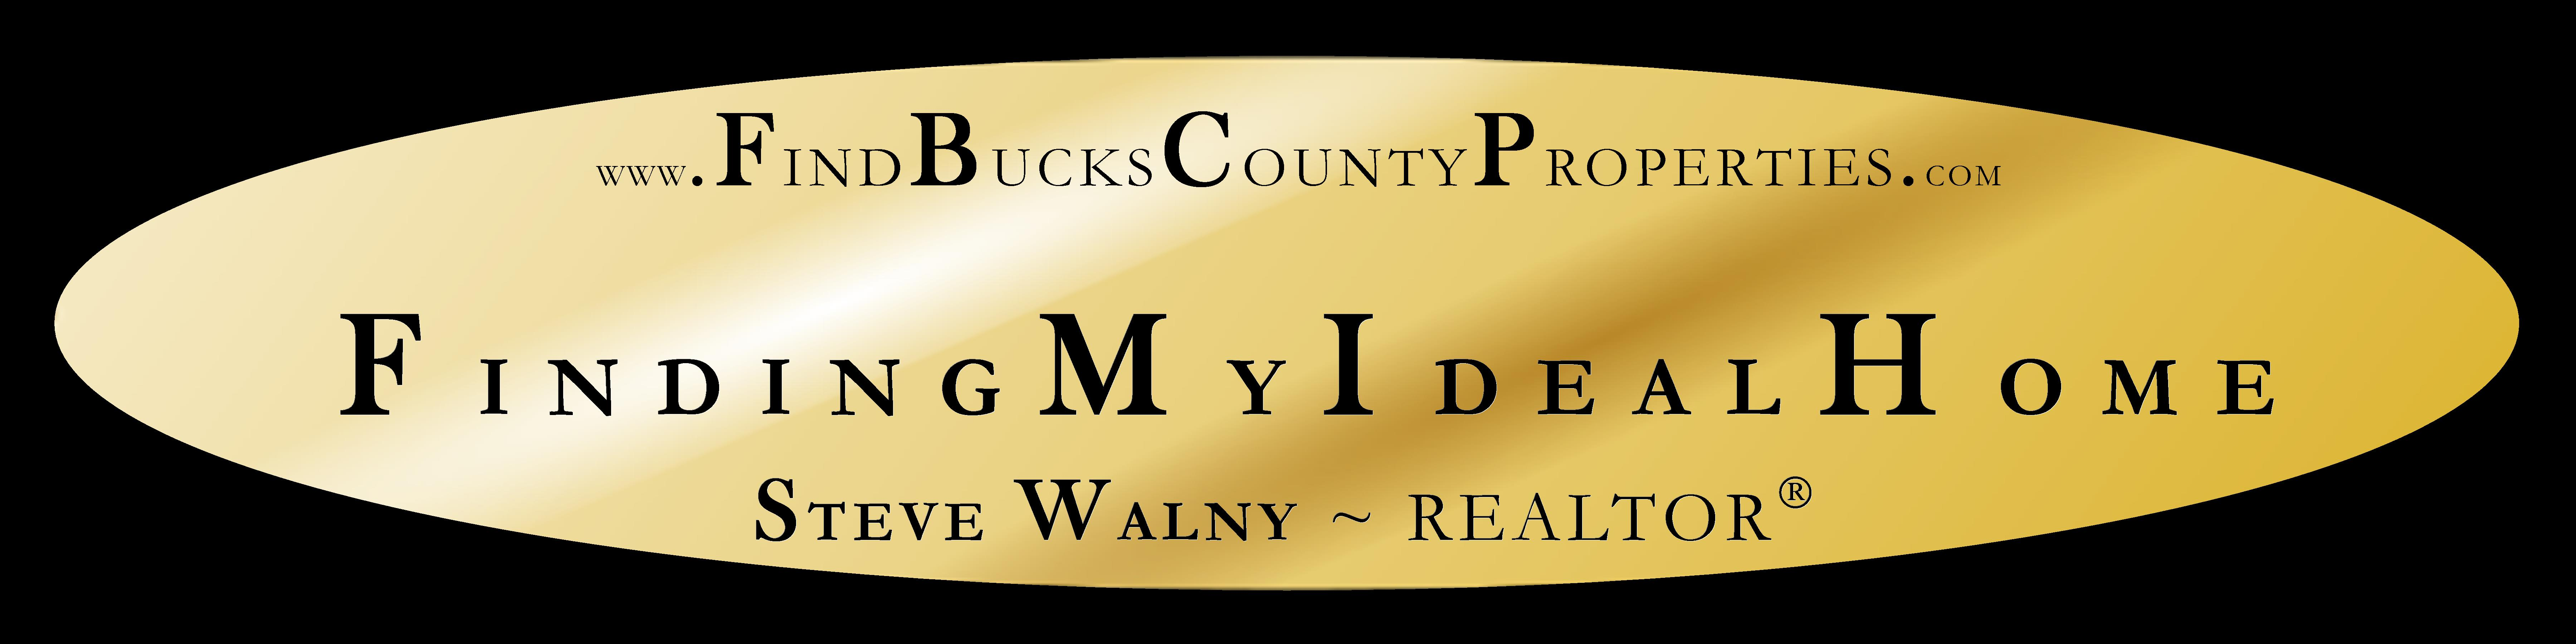 Find My Ideal Bucks County Home